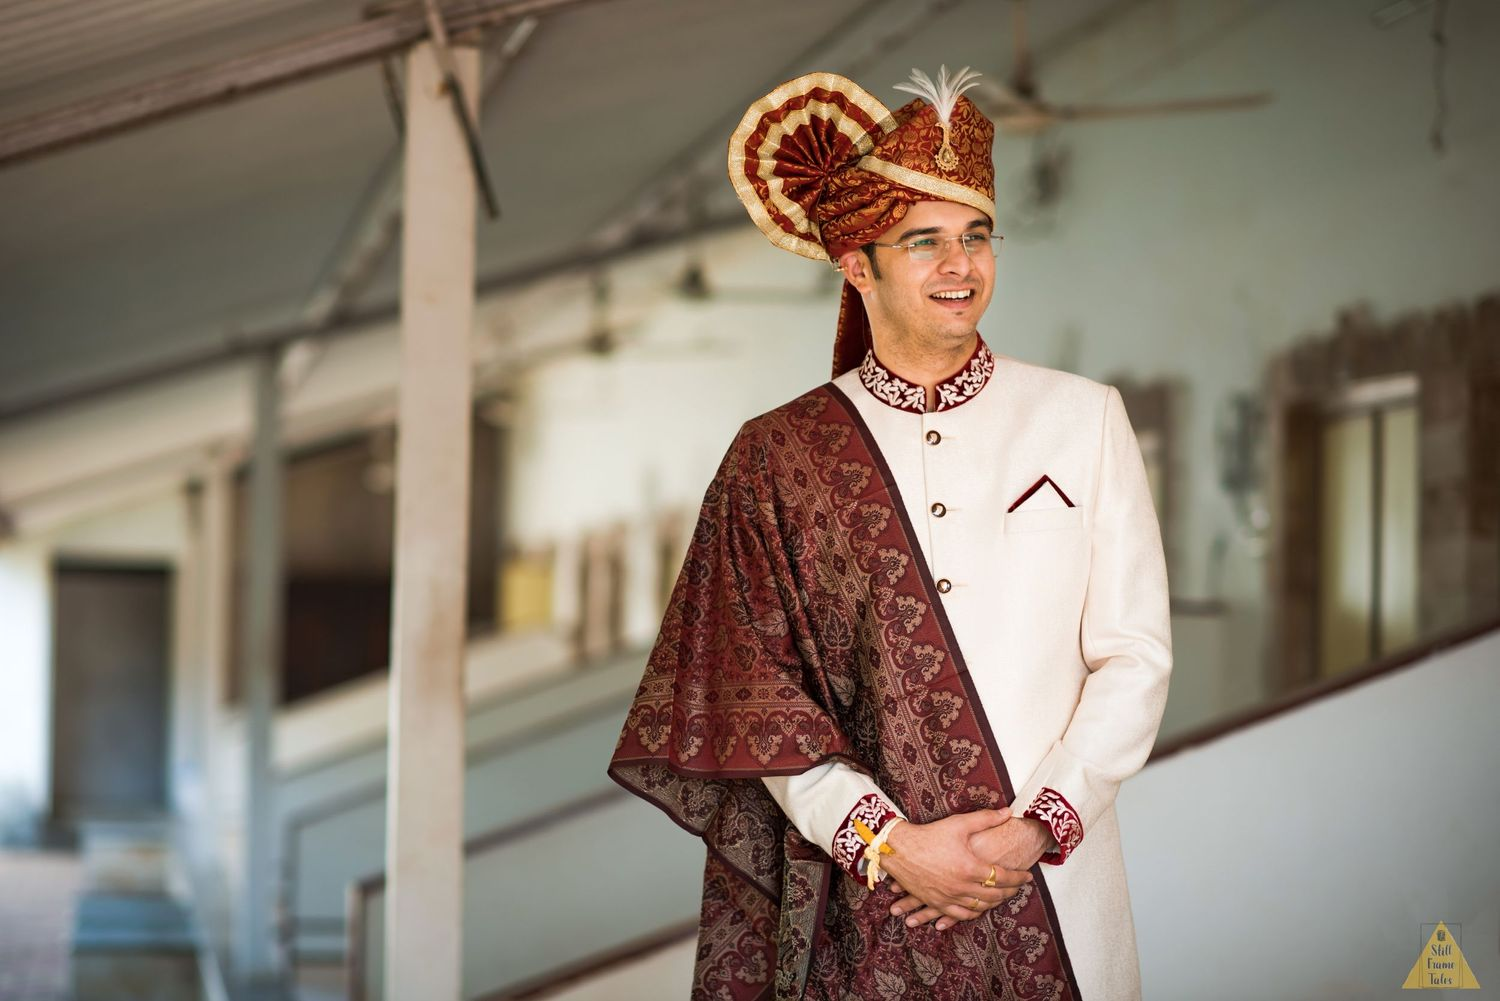 Groom wearing his wedding dress with pagadi at a destination wedding